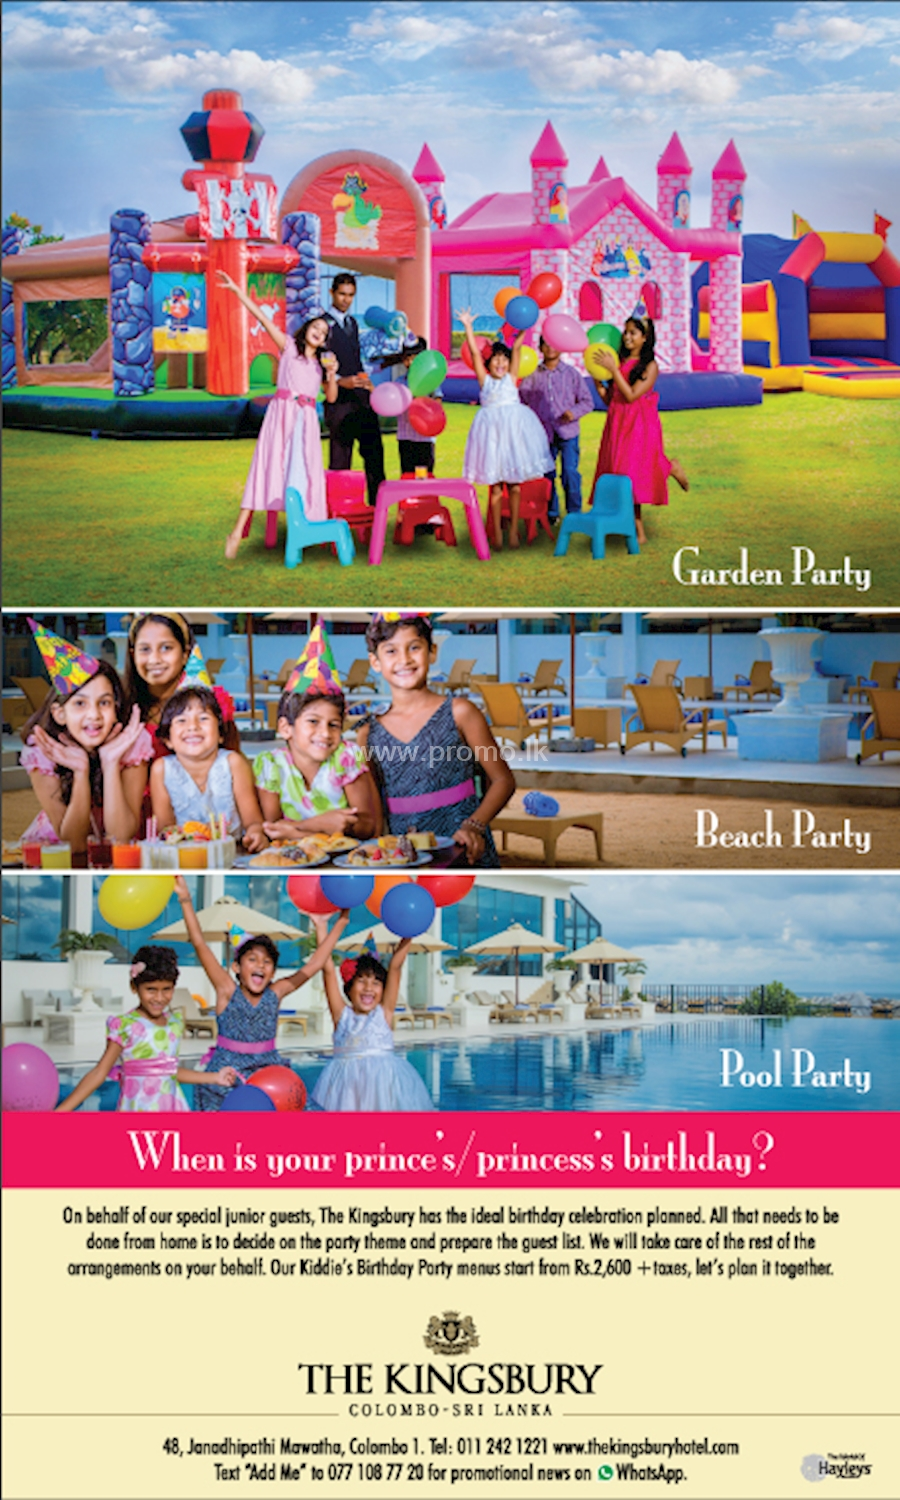 A Birthday Party for your Prince and Princes at The